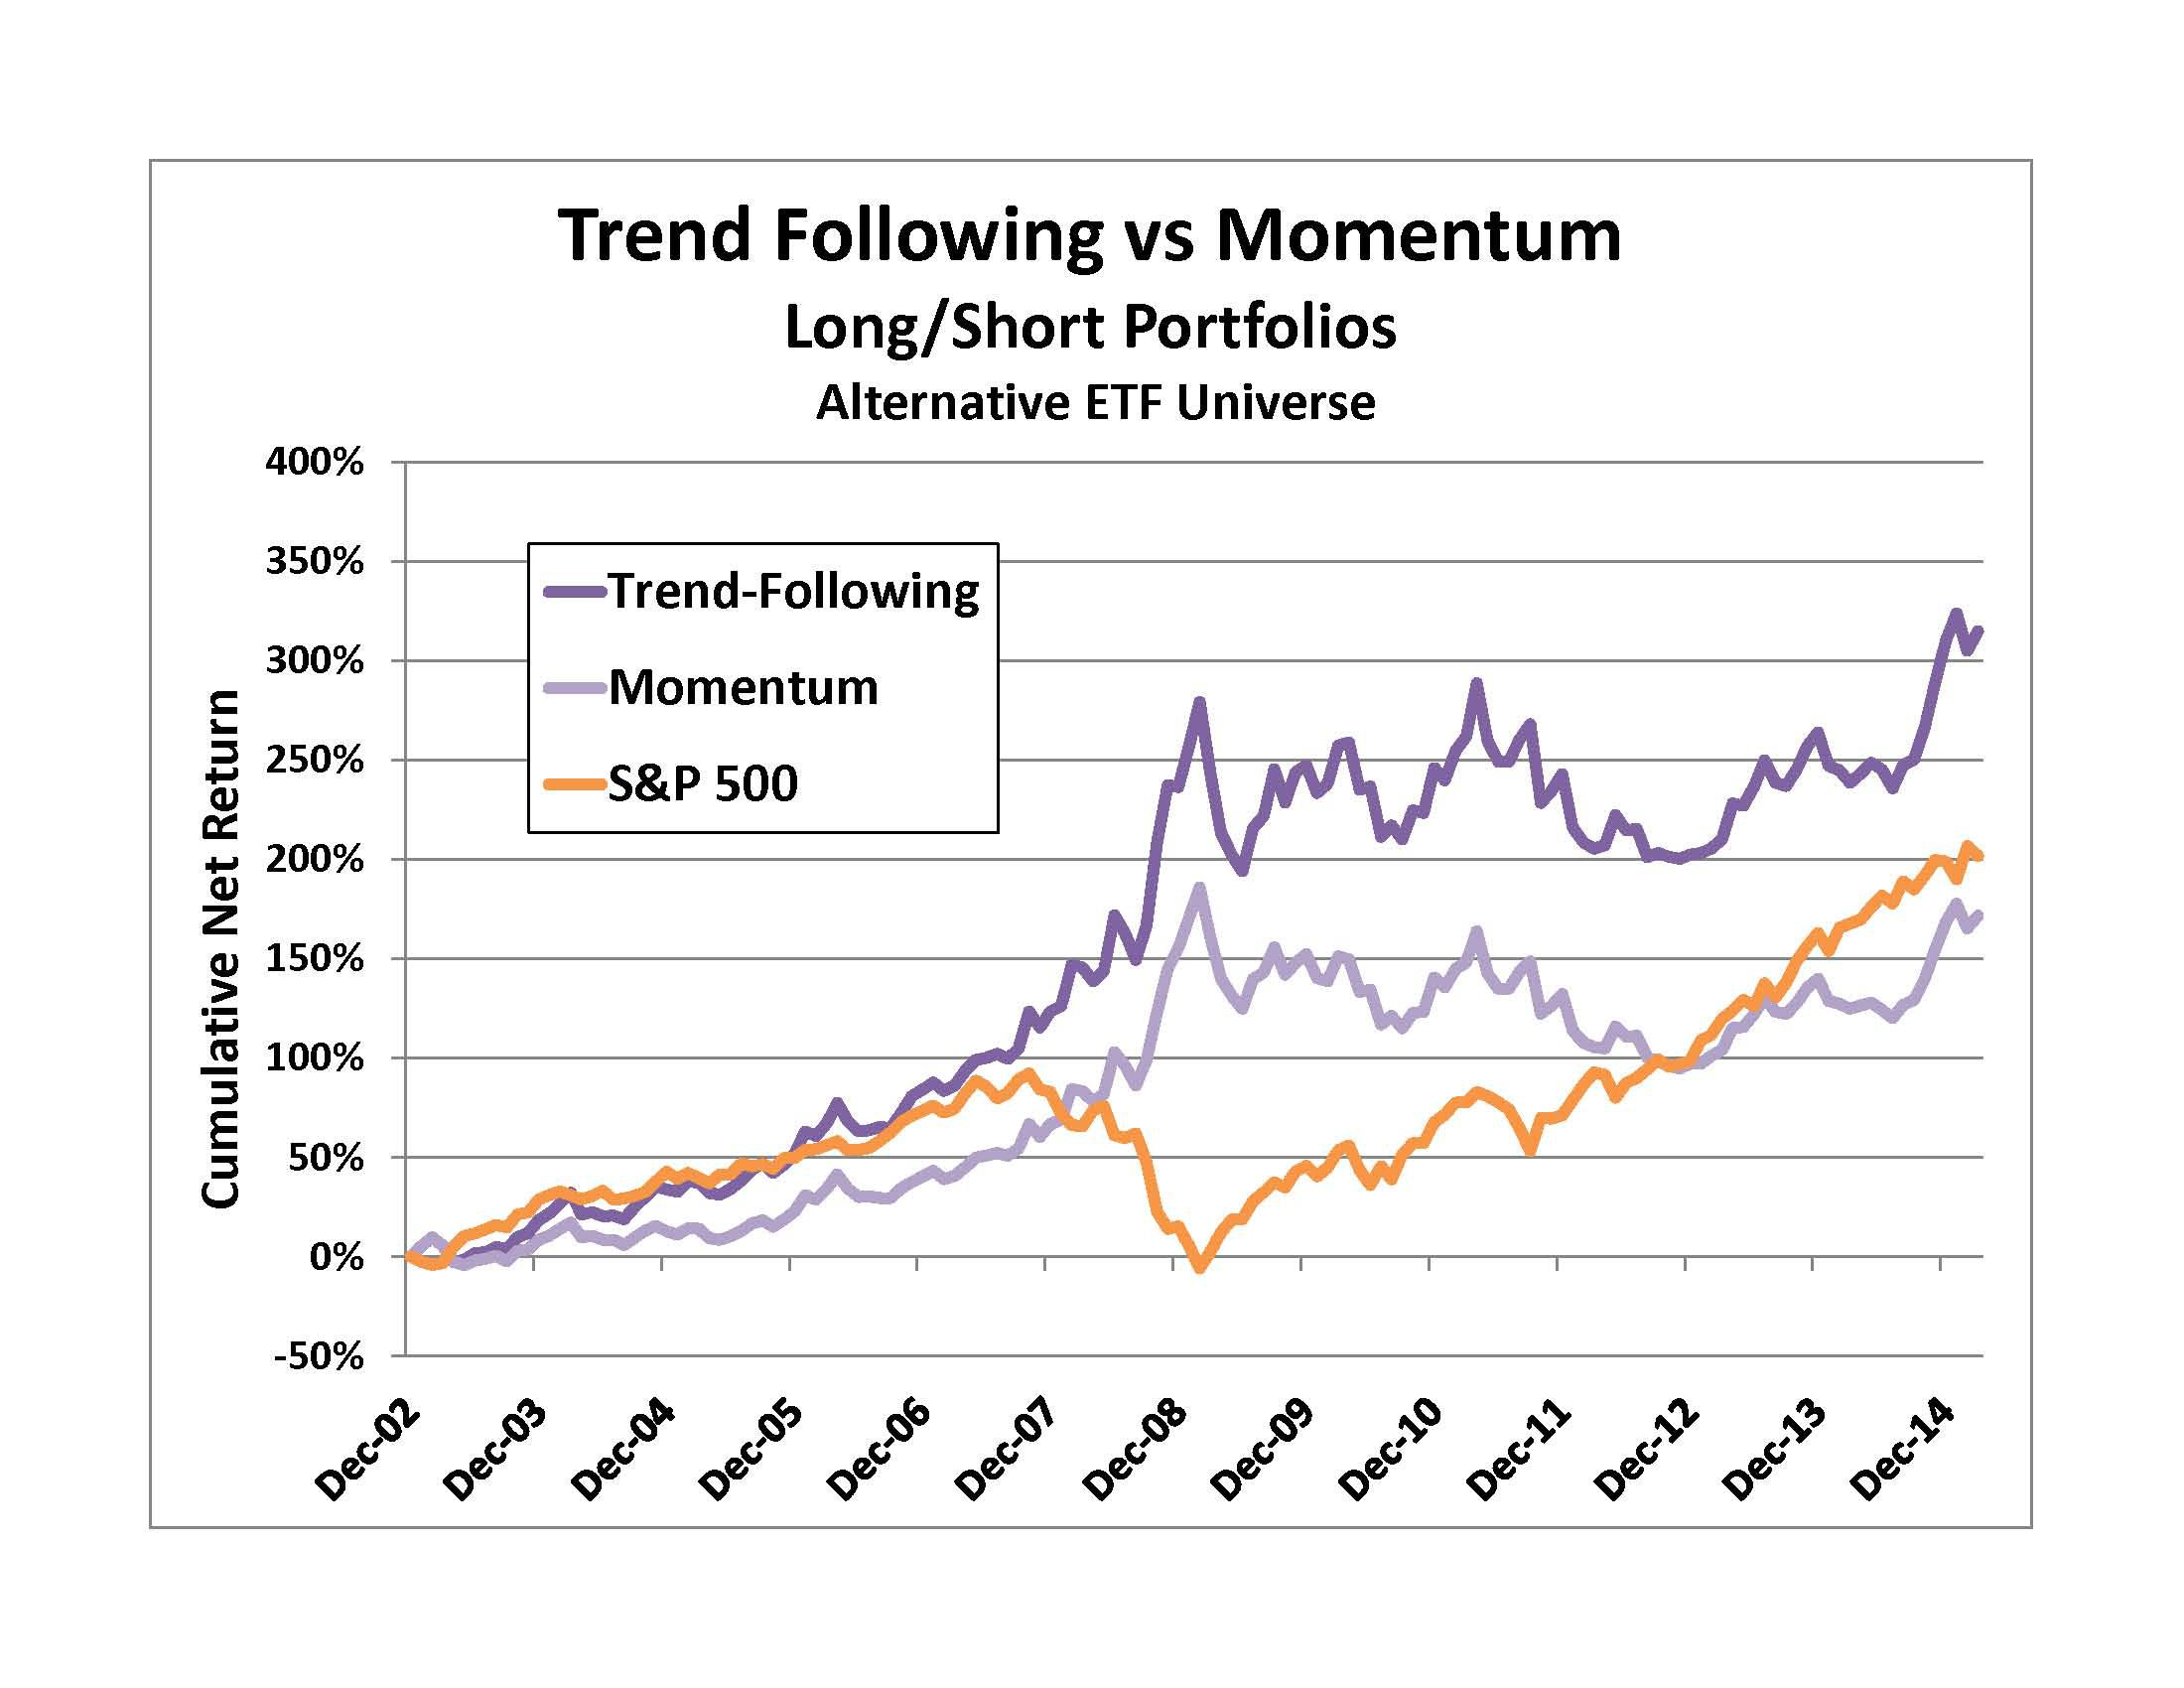 Quantitative Momentum And Trend-Following With ETFs